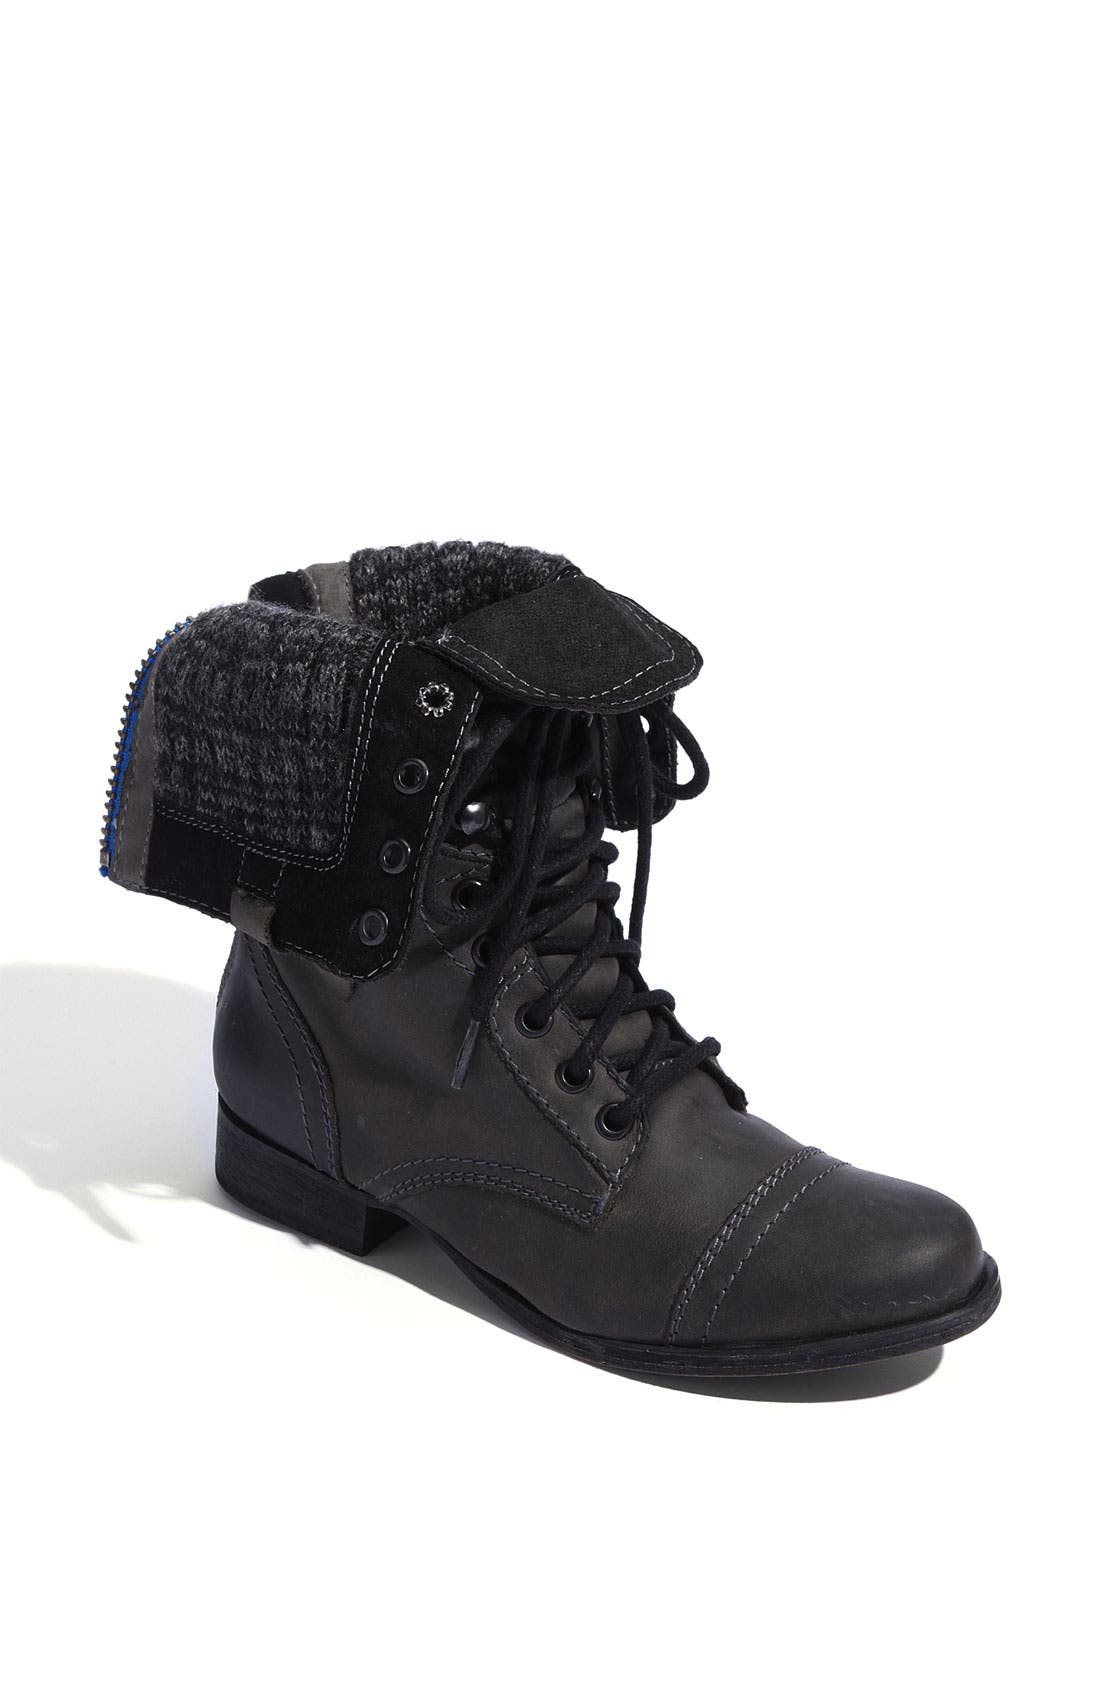 Alternate Image 1 Selected - Steve Madden 'Cablee' Boot